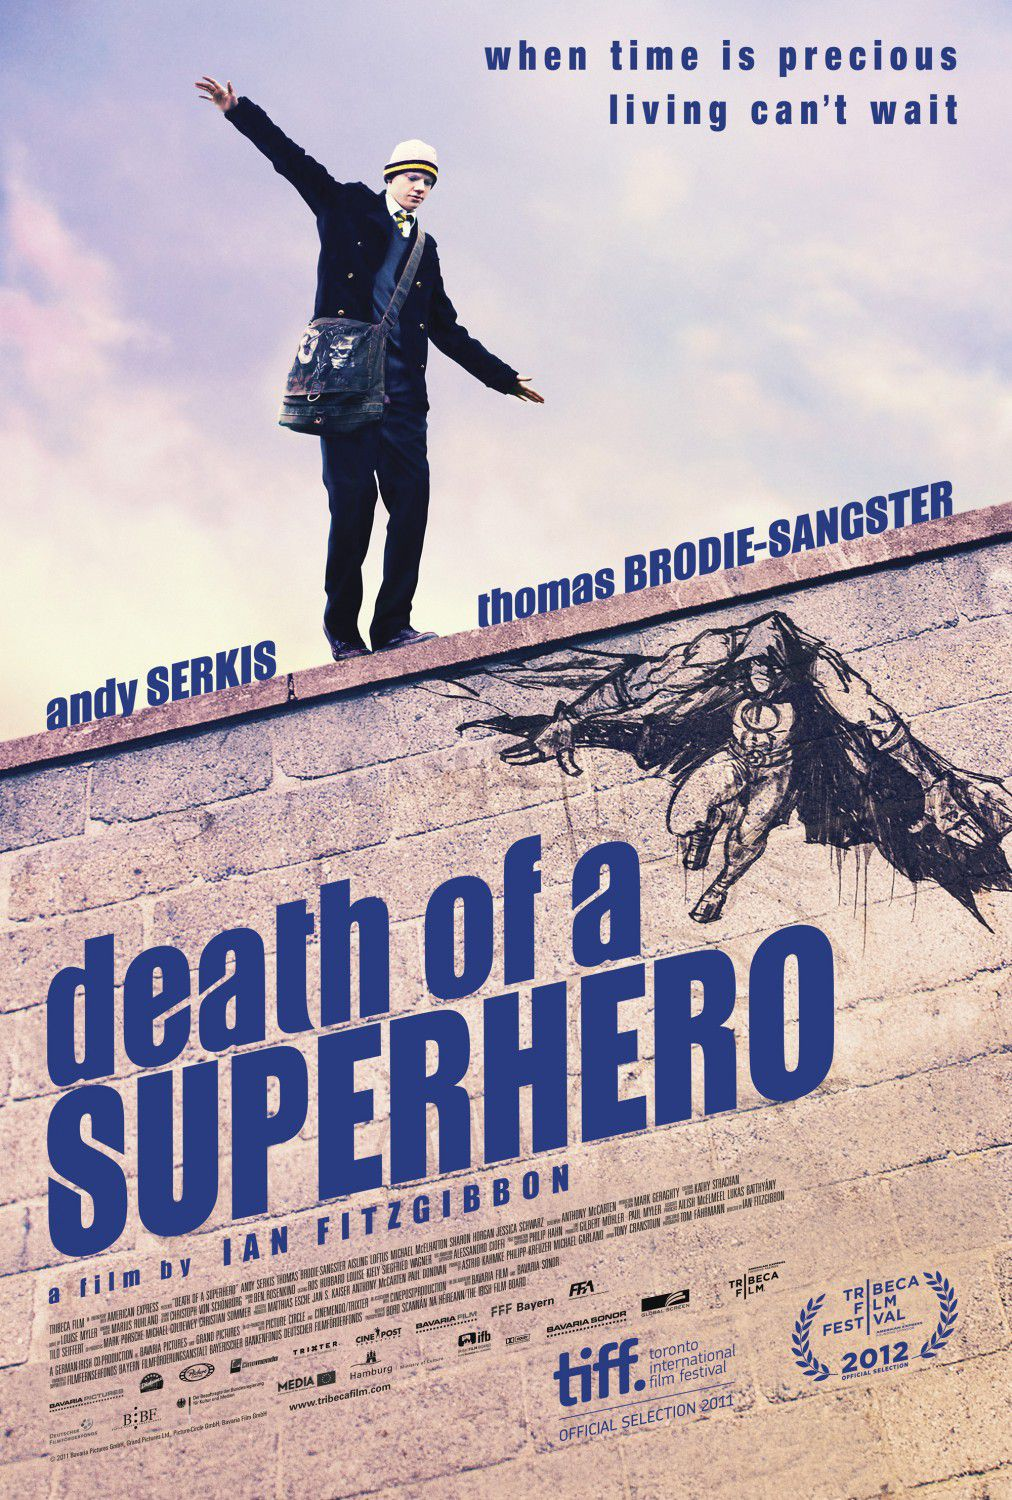 Death of Superhero - when time is precious living can't wait - Andy Serkis - Thomas Brodie Sangster - Ian Fitzgibbon - slice of real life film poster